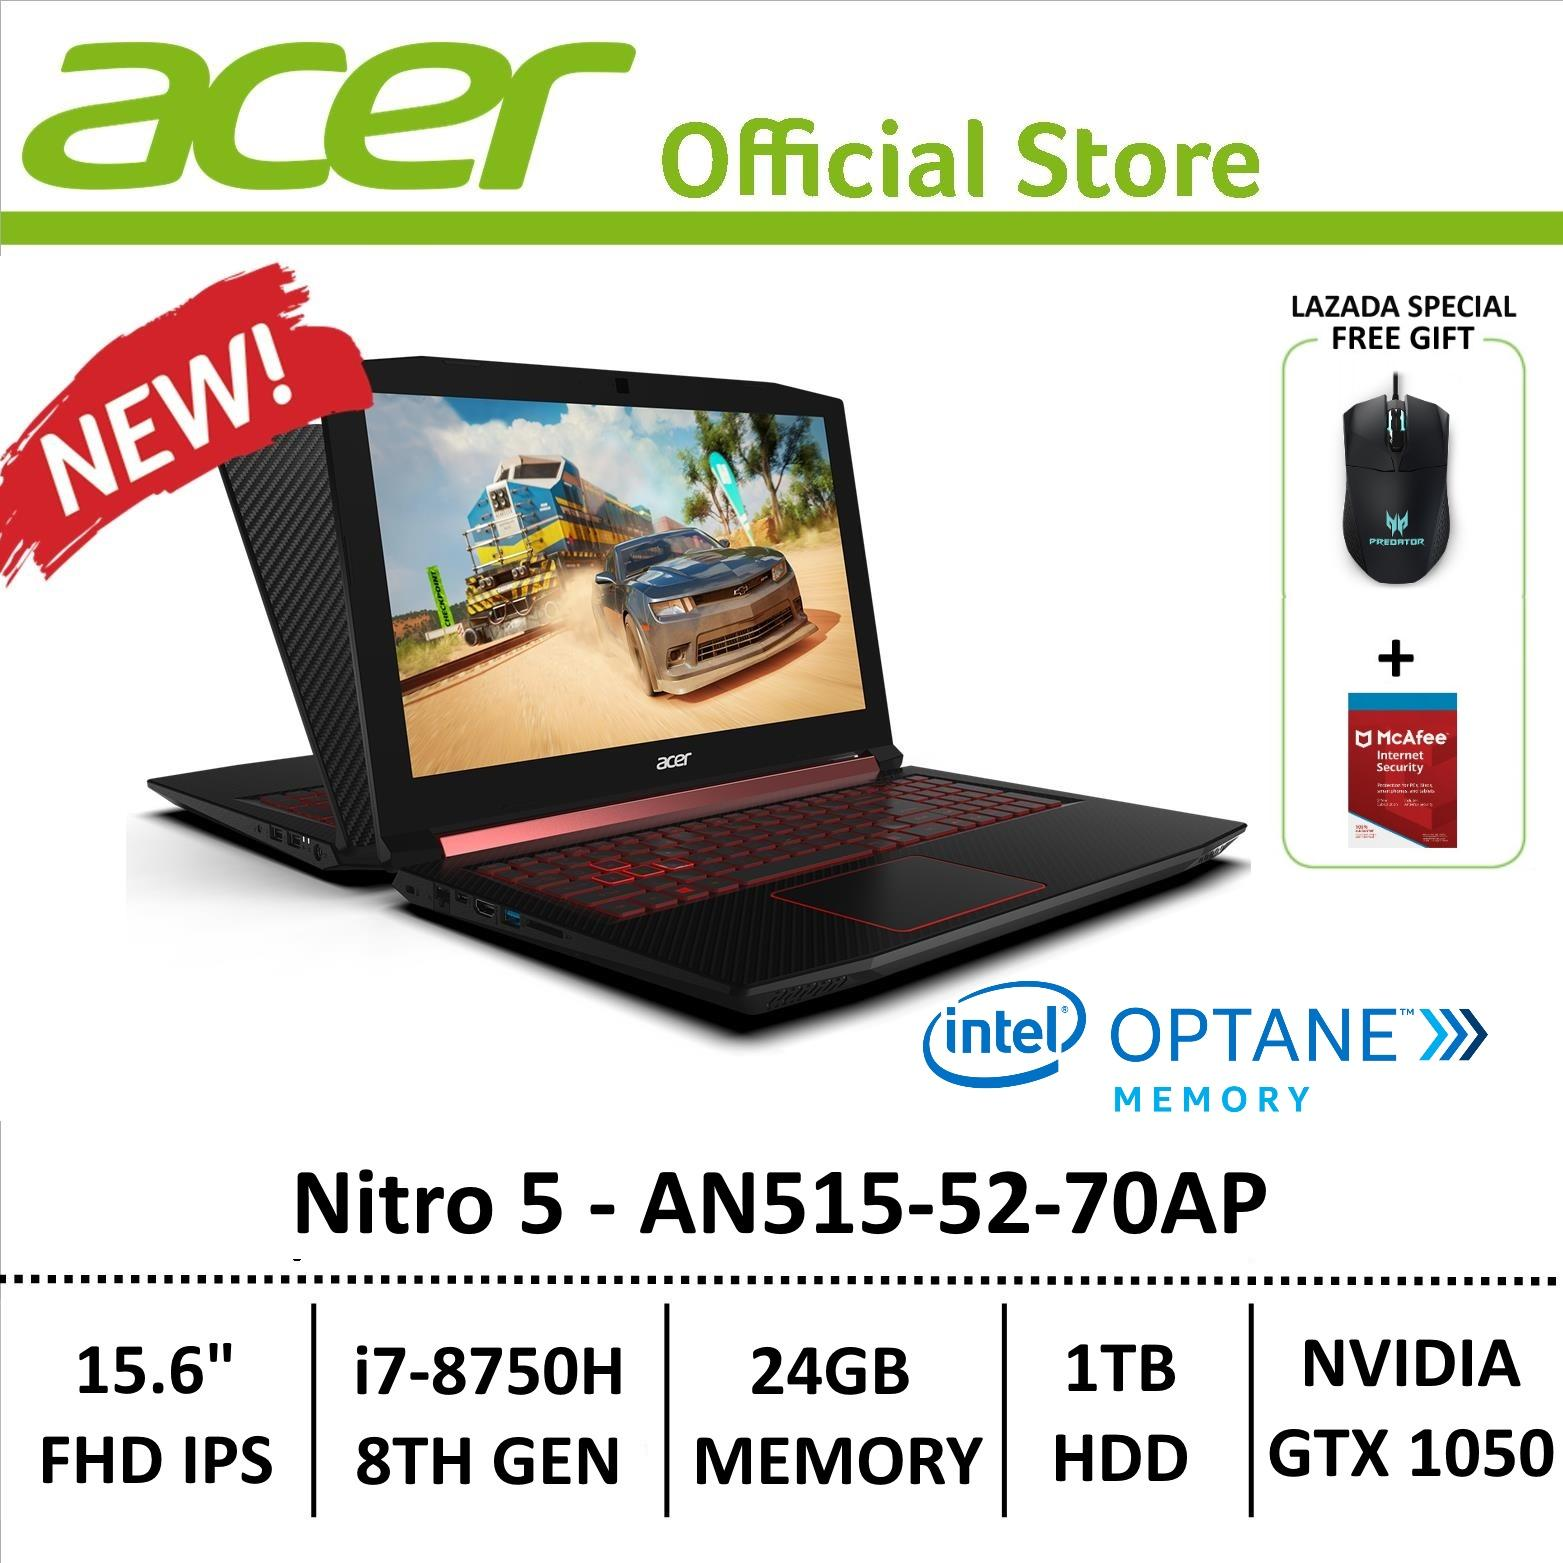 Acer Aspire Nitro 5 AN515-52-70AP Gaming Laptop - 8th Generation Core i7+ Processor with GTX 1050 Graphics (Optane Memory) + Free Gift